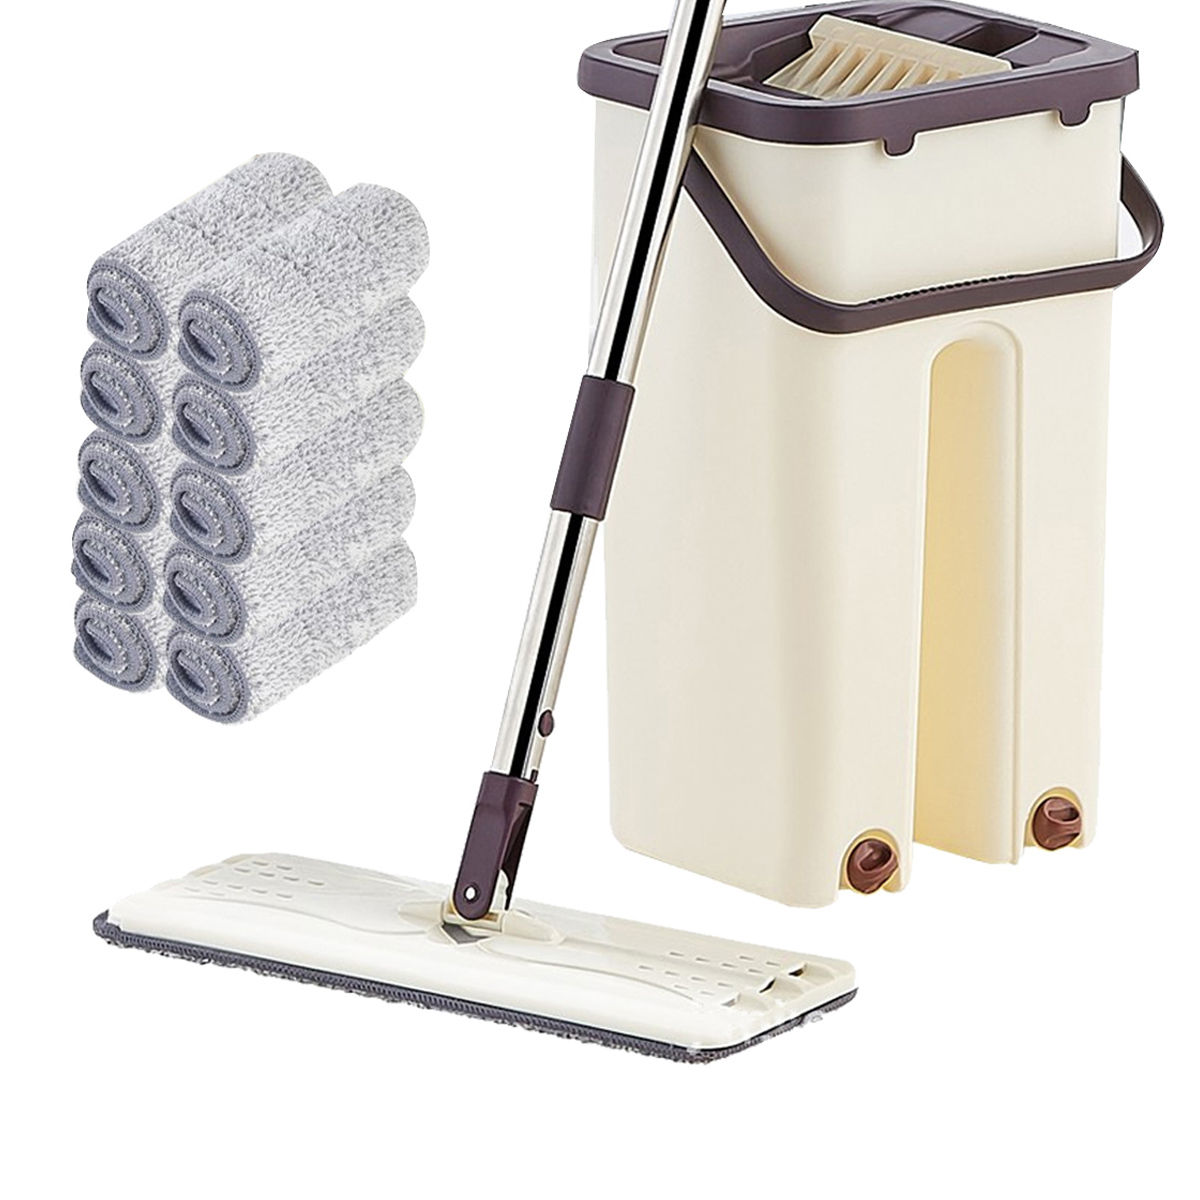 Hand-Free Spin Mop for Automatic Wet or Dry Mopping in 360-Degree Rotation Structure Design